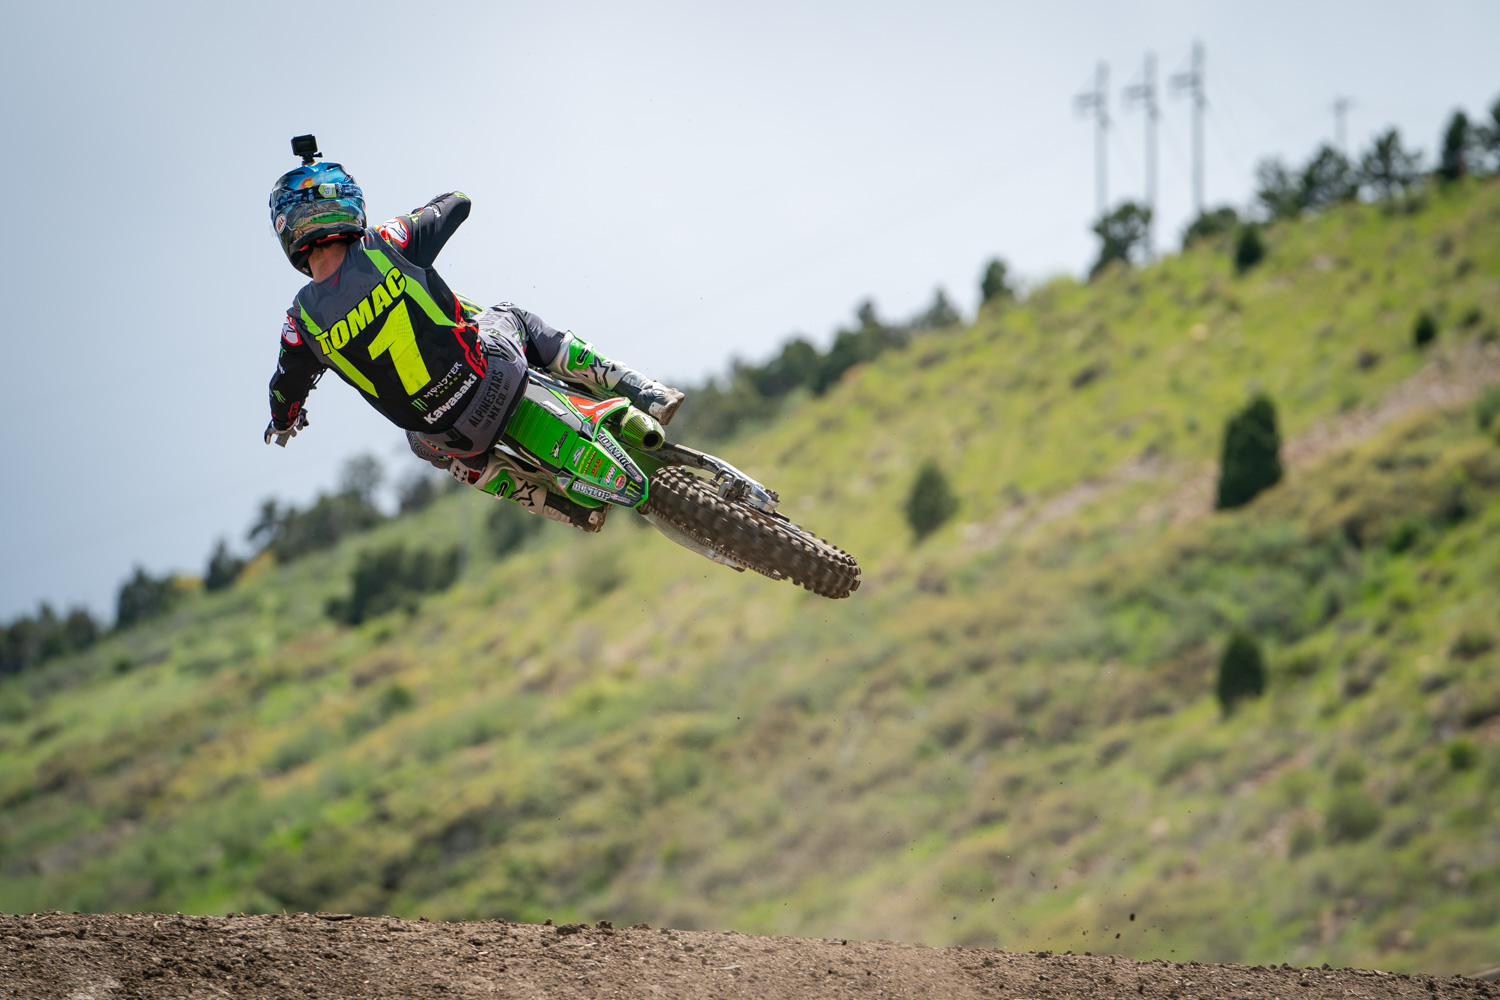 Eli Tomac | GoPro Onboard Full Moto At Thunder Valley - Swapmoto Live